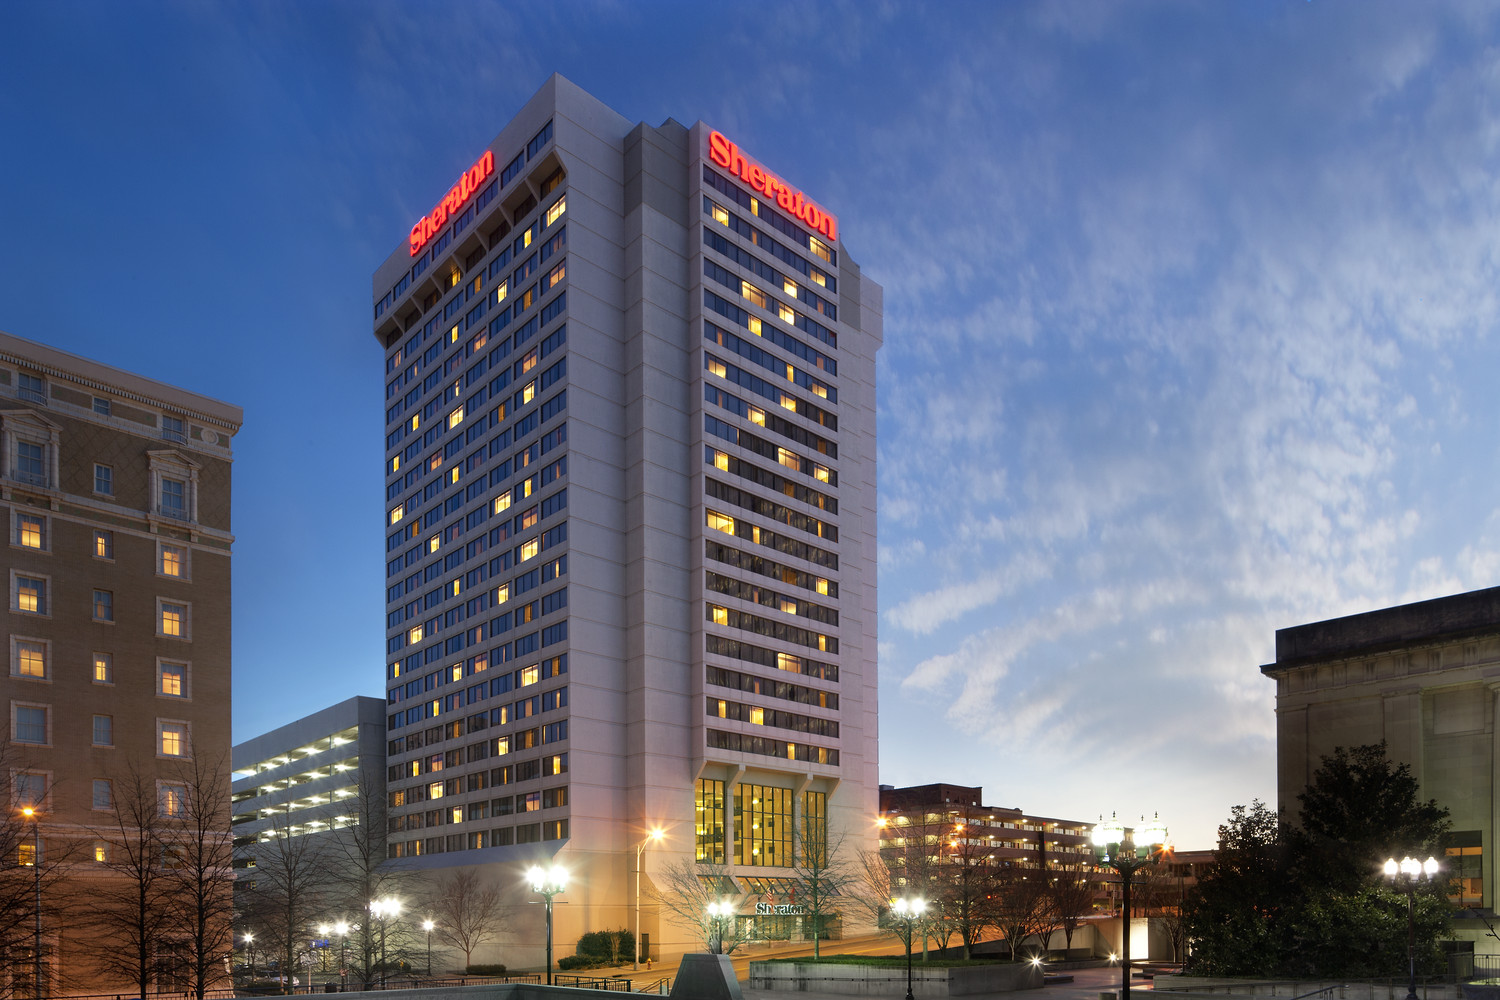 Sheraton Nashville Downtown, Nashville Deals